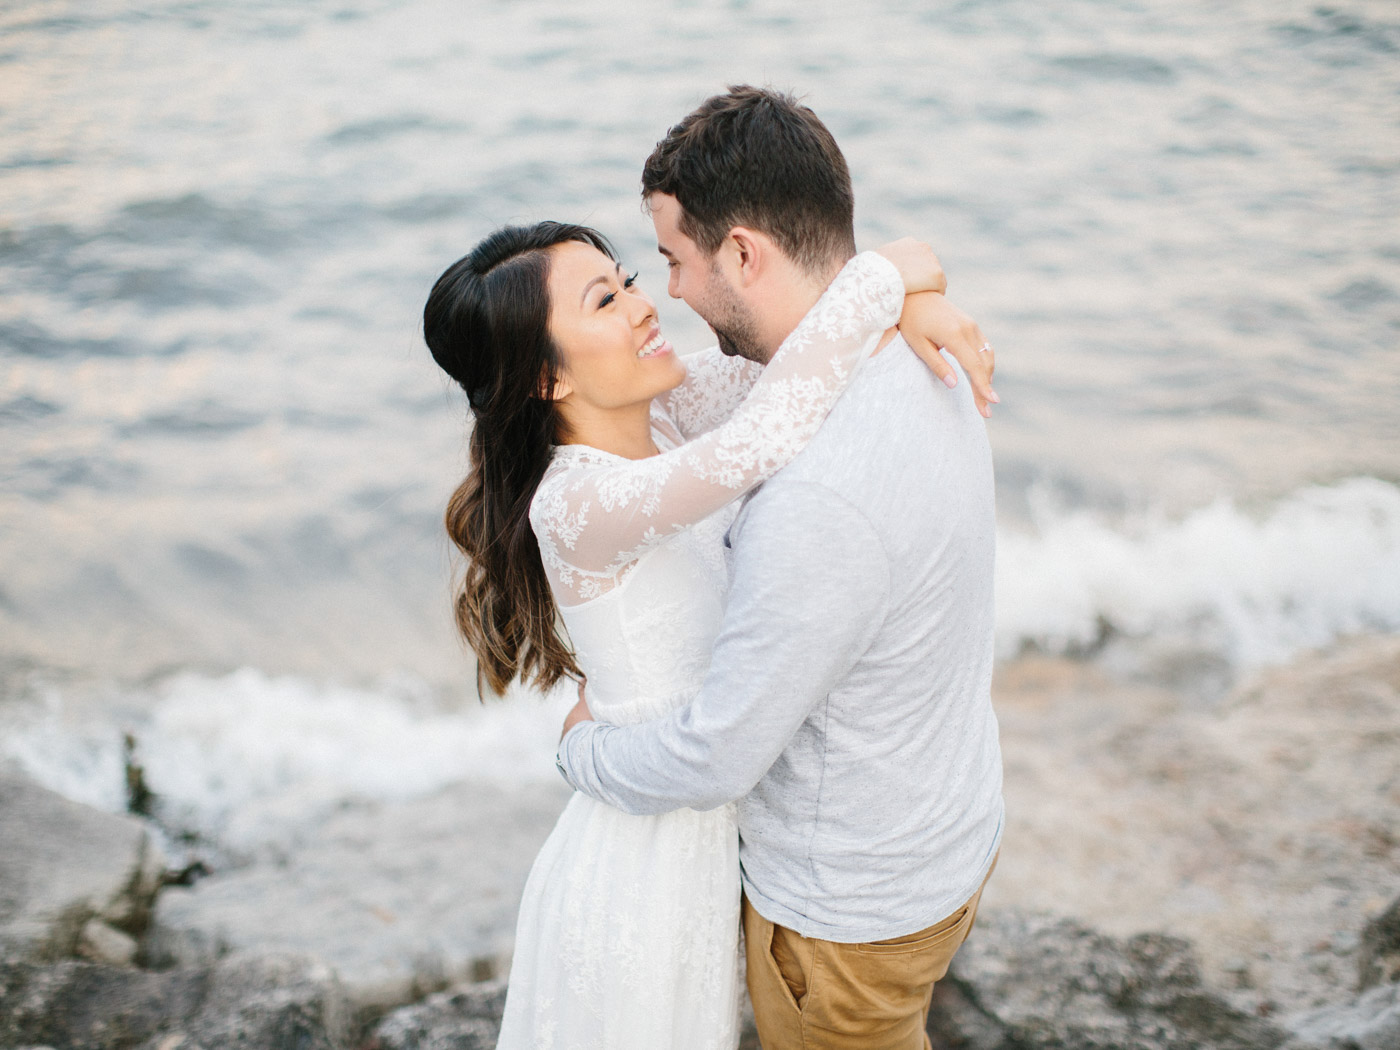 toronto_wedding_photographer_engagement_photography_tips-50.jpg